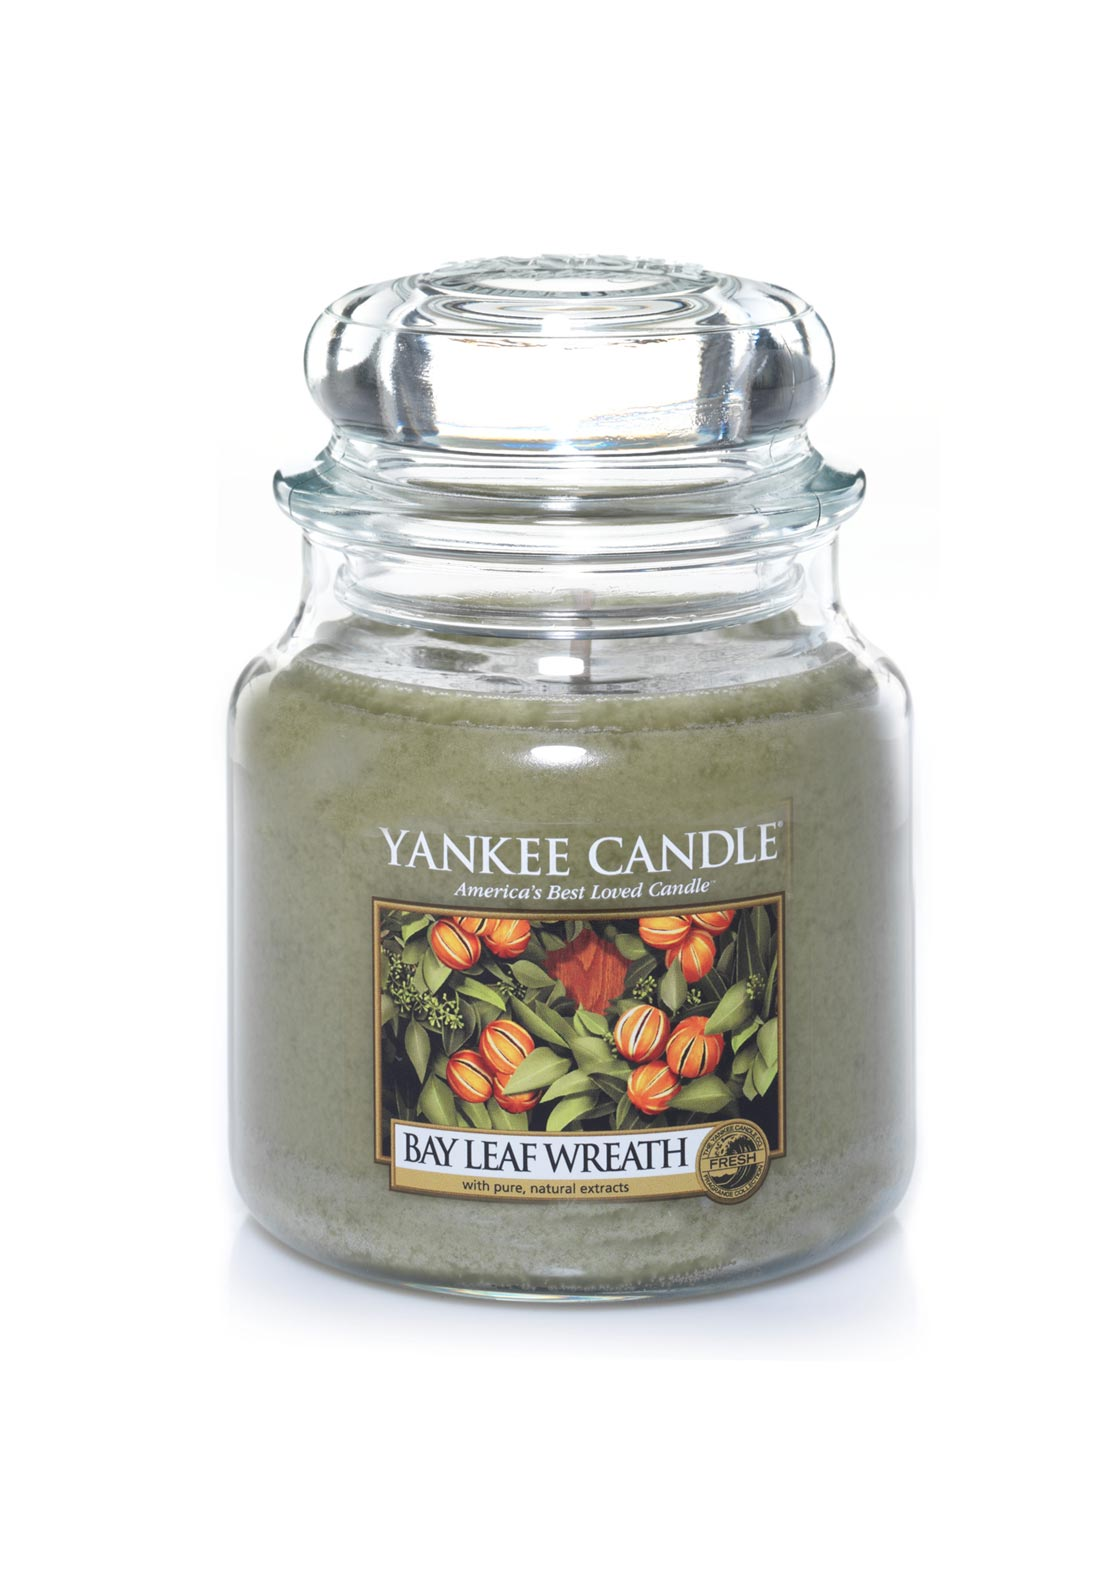 Yankee Candle Medium Classic Jar, Bay Leaf Wreath